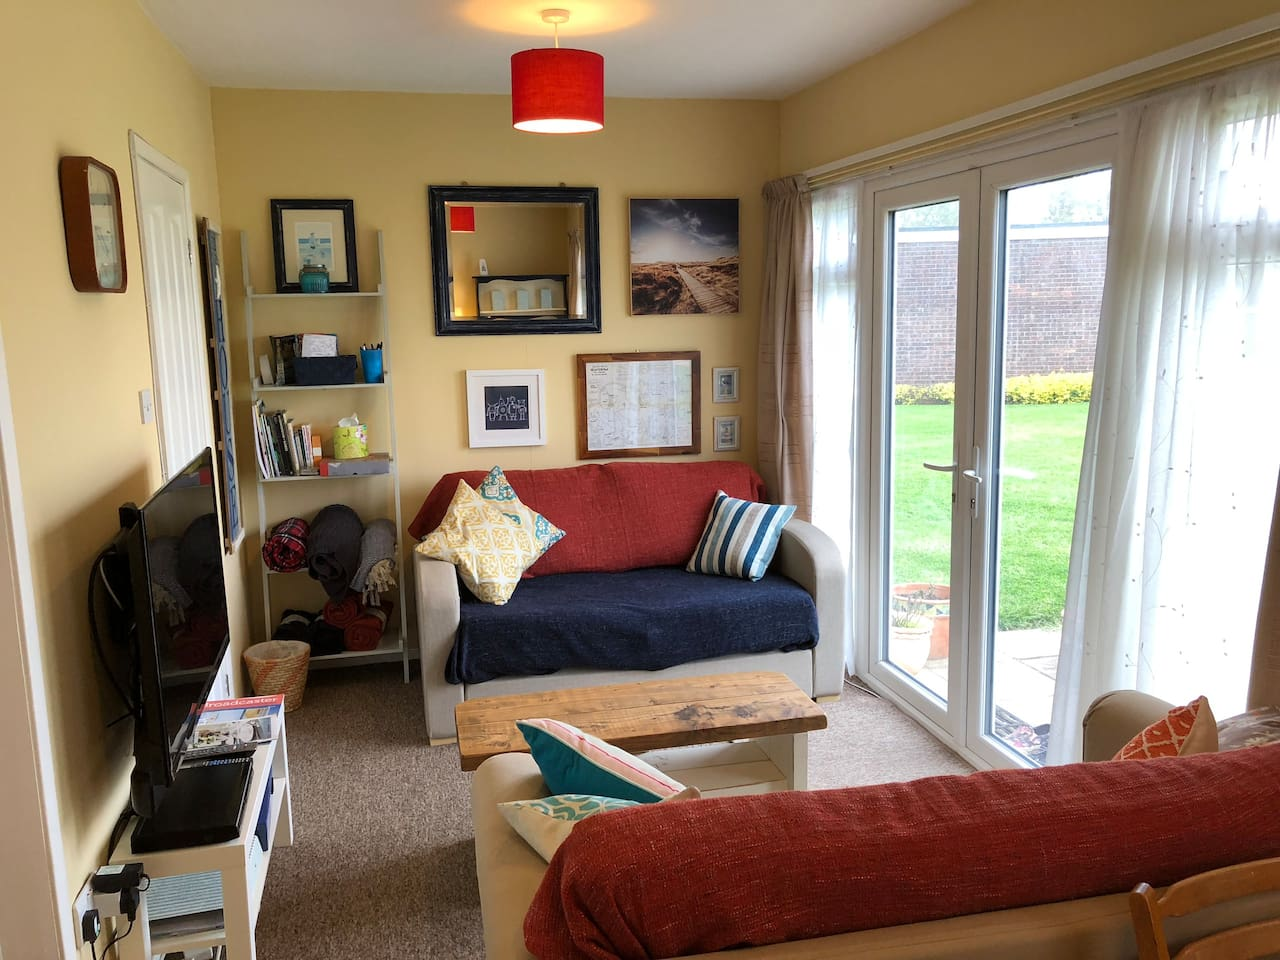 Homely open plan living space with patio doors, TV and DVD player